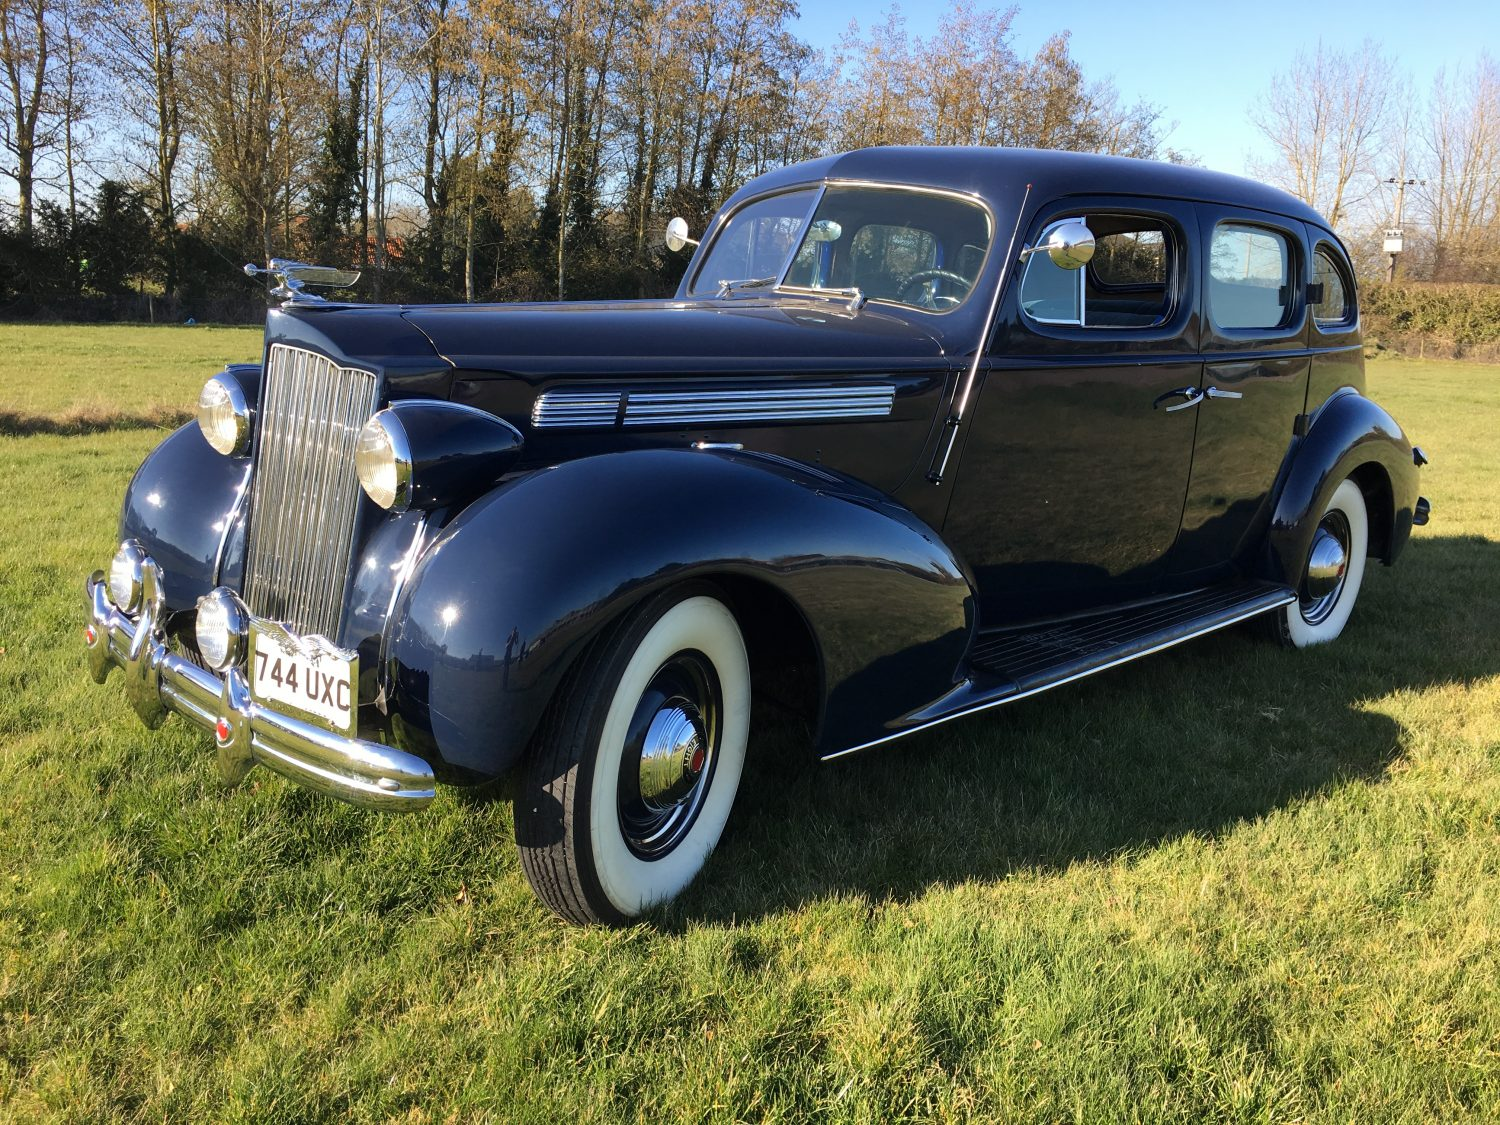 The sun's out, the Packard's out